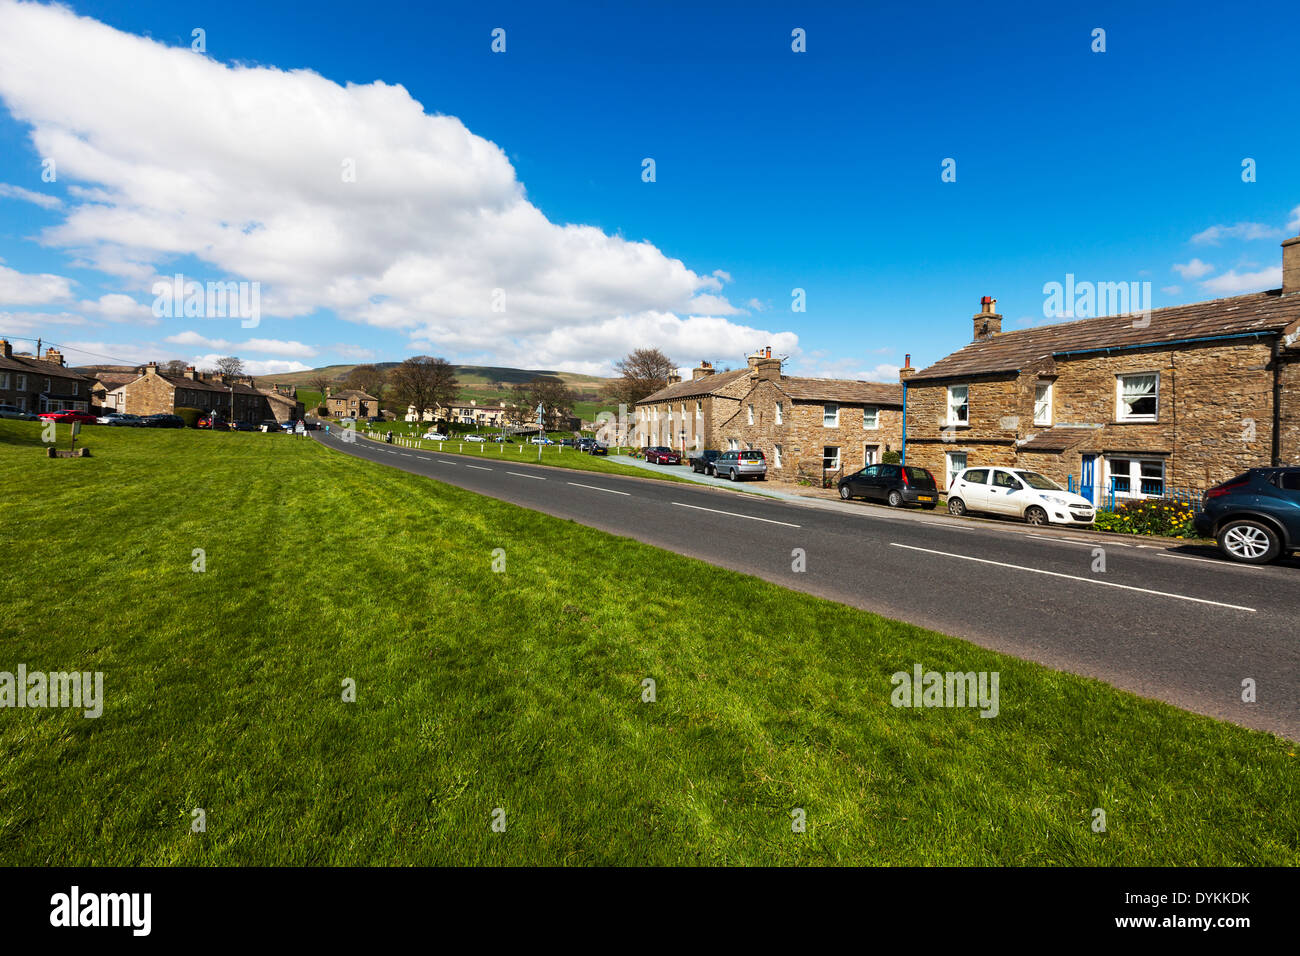 Bainbridge Village Yorkshire Dales National Park UK England GB Road Homes Houses